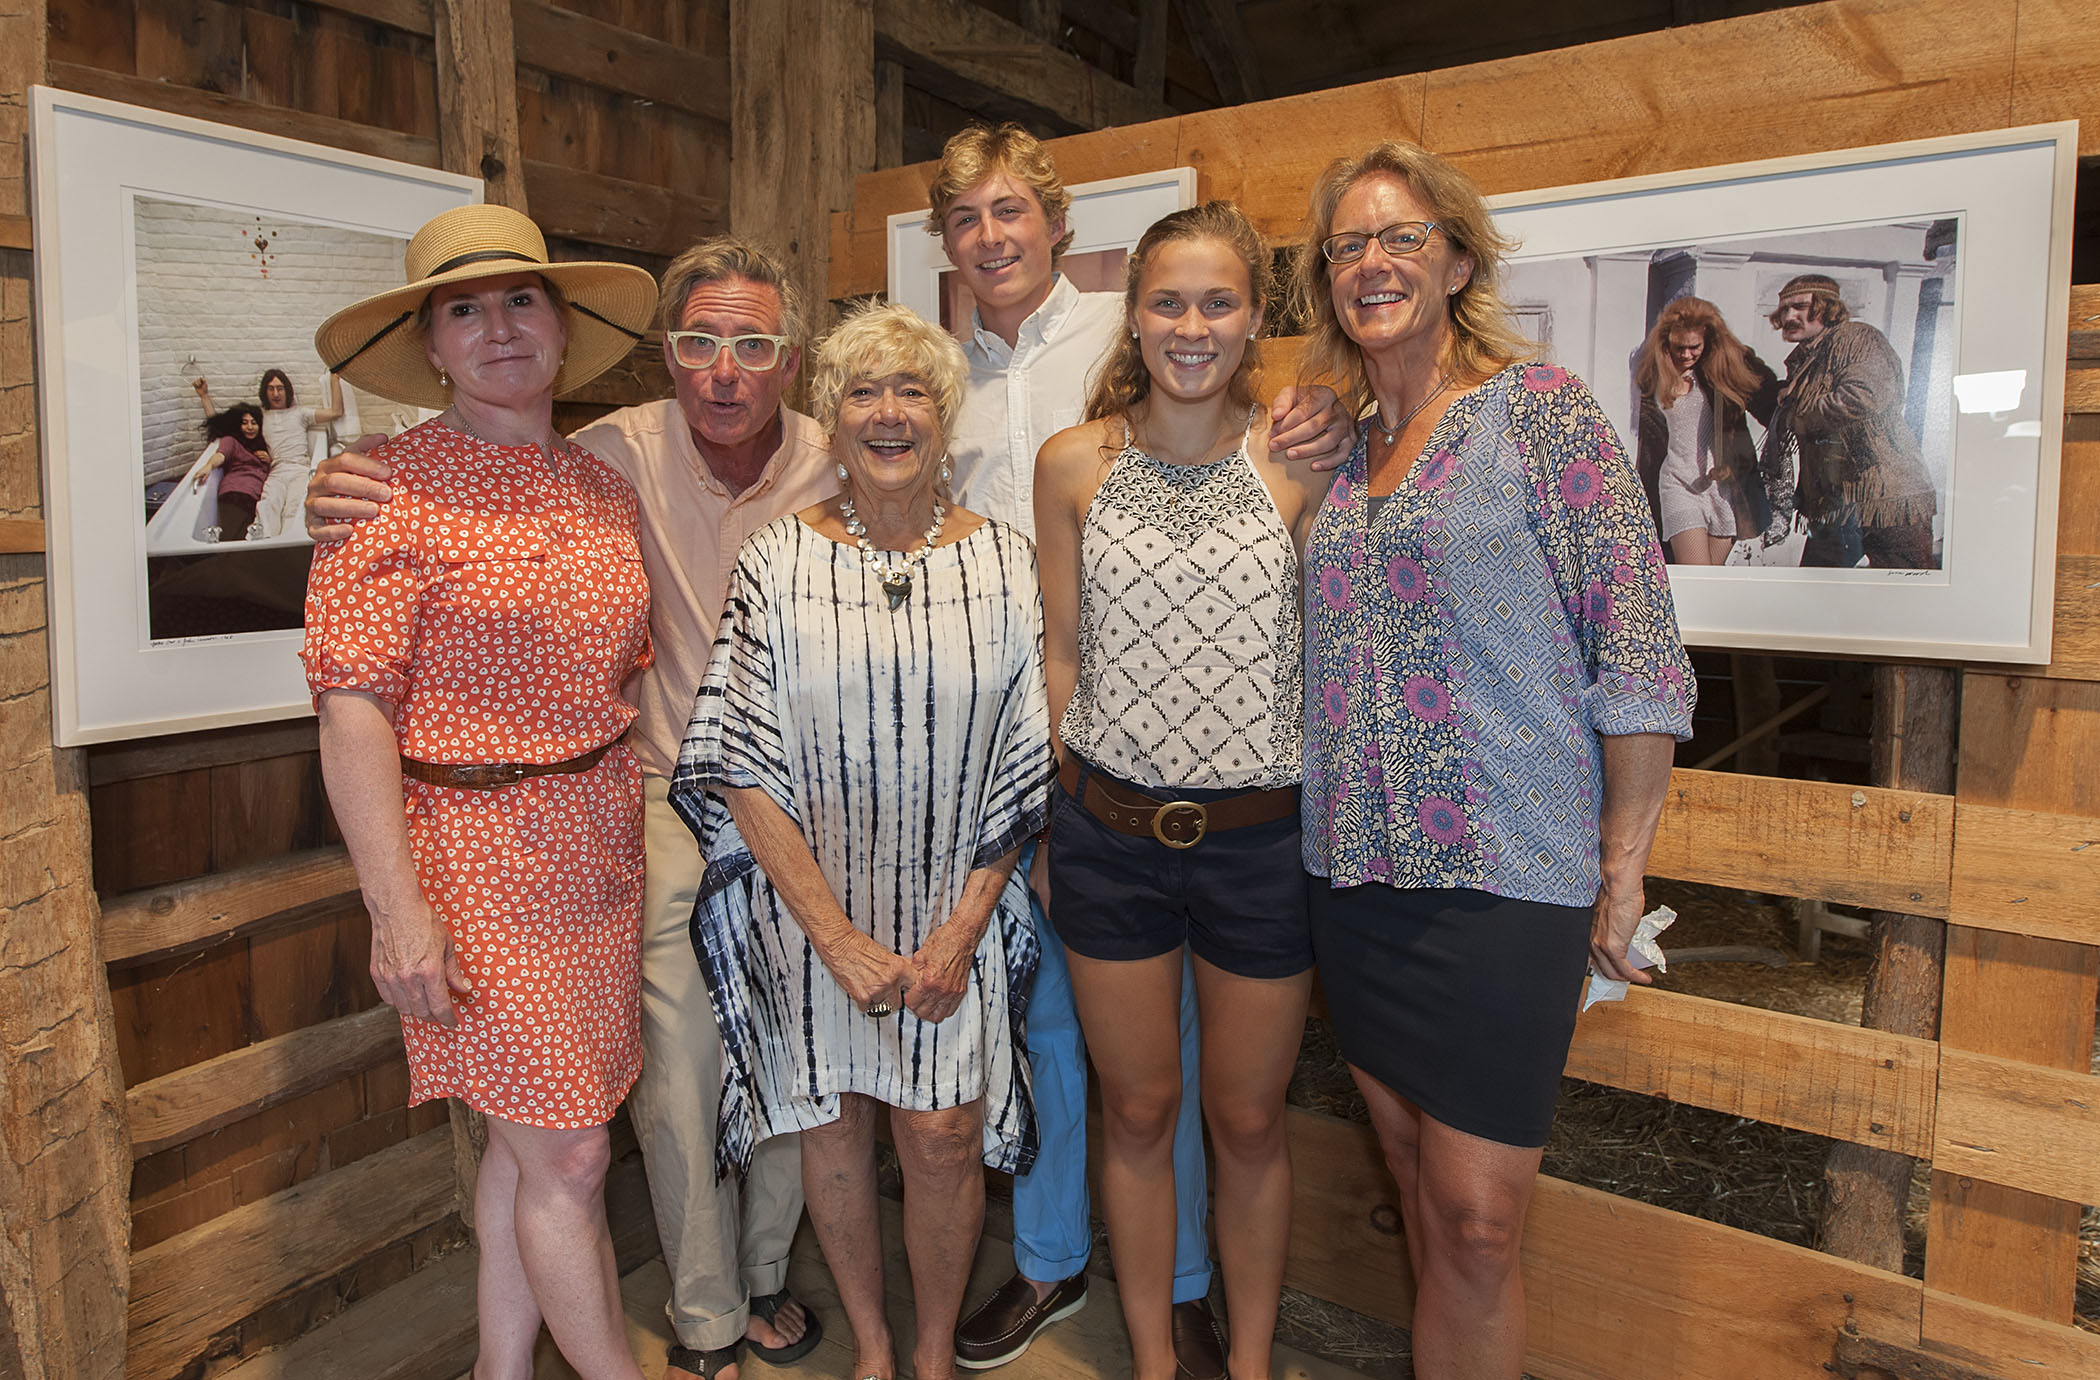 (Susan with family): Leah Haggerty, Chip Haggerty, Susan Wood, Chad Haggerty, Emma Putre and Amy Weller (credit: michael heller)